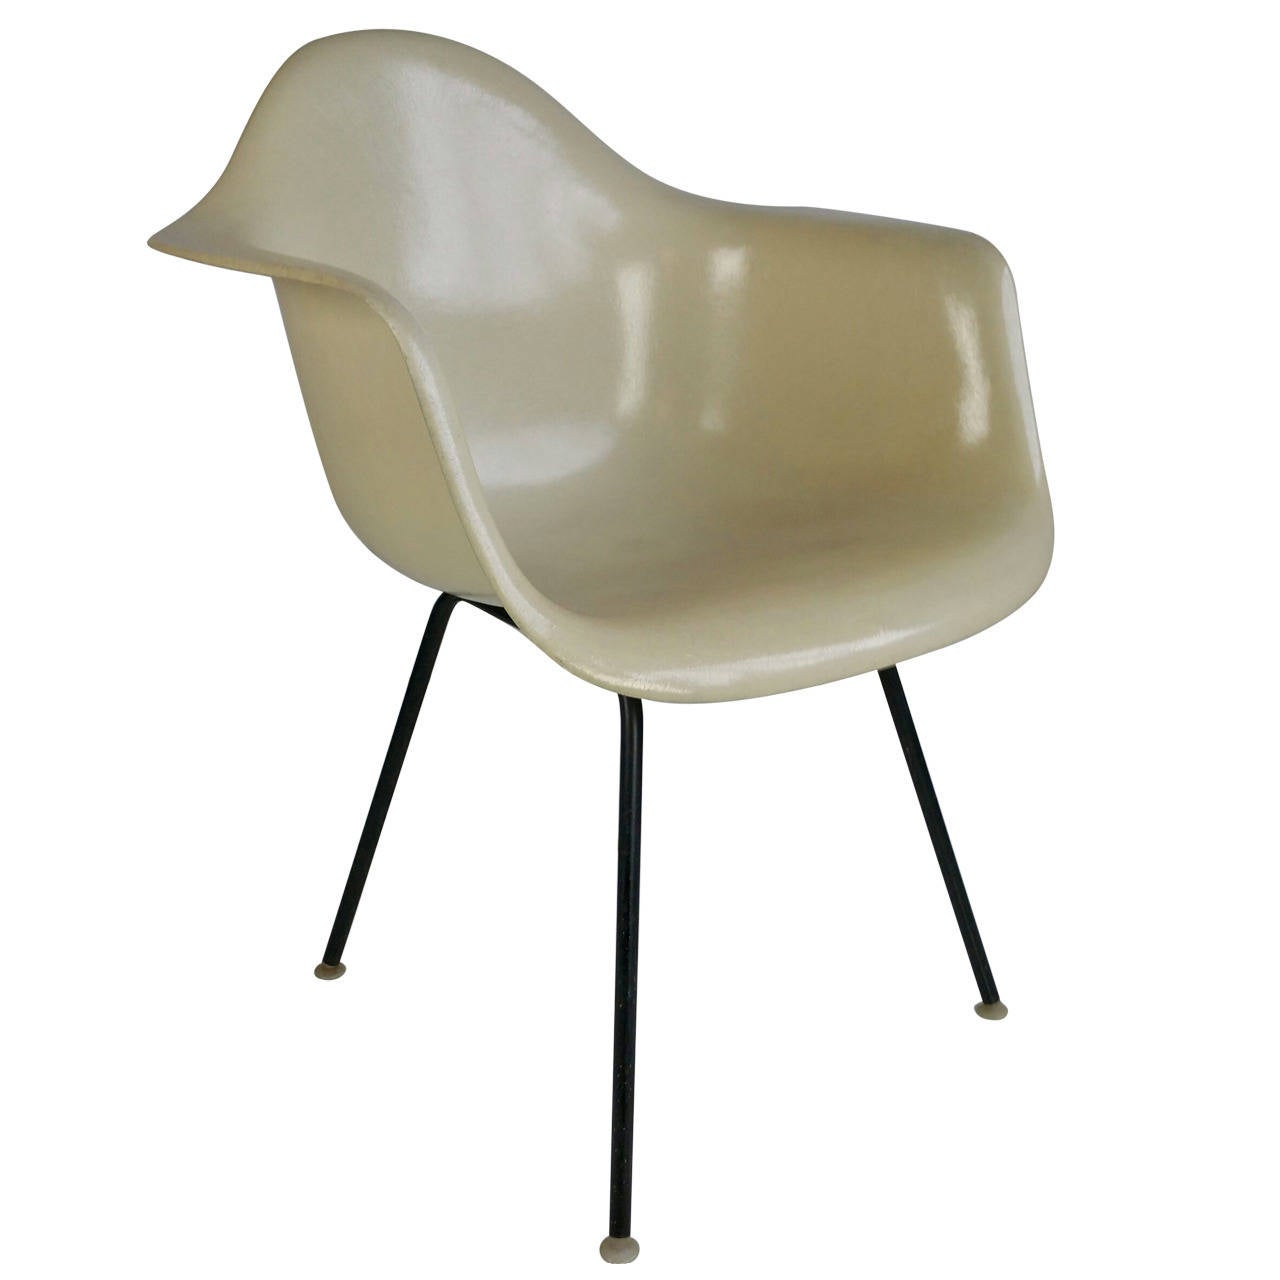 Charles eames parchment arm shell chair herman miller for sale at 1stdibs - Herman miller chair eames ...